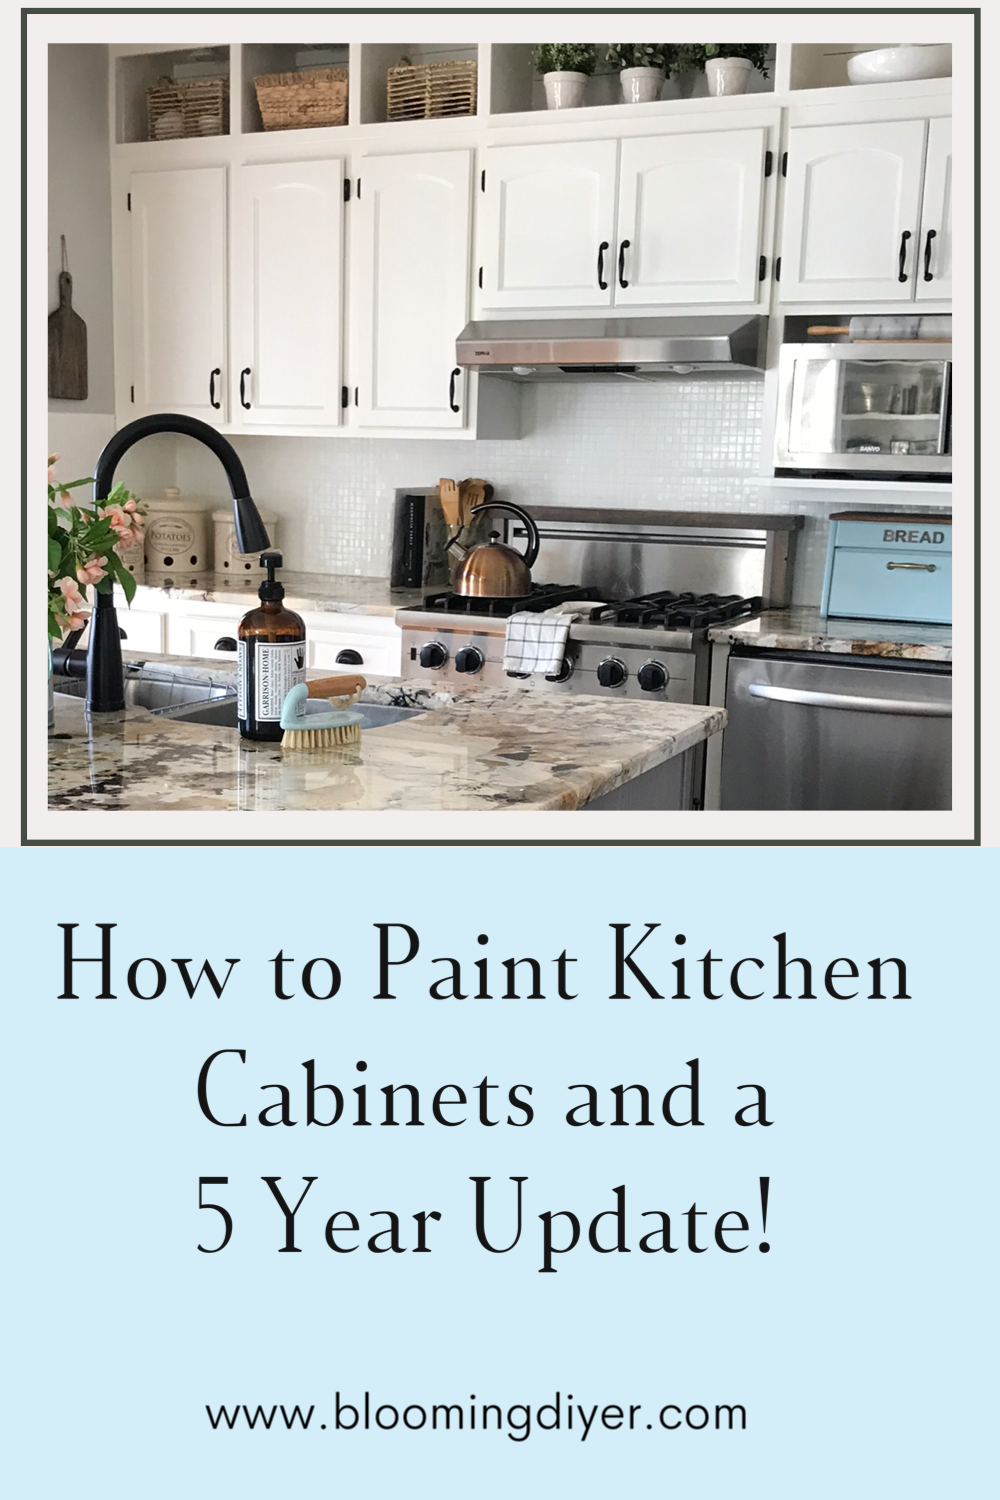 How To Paint Kitchen Cabinets To Last In 2020 Kitchen Cabinets Kitchen Paint Painting Kitchen Cabinets